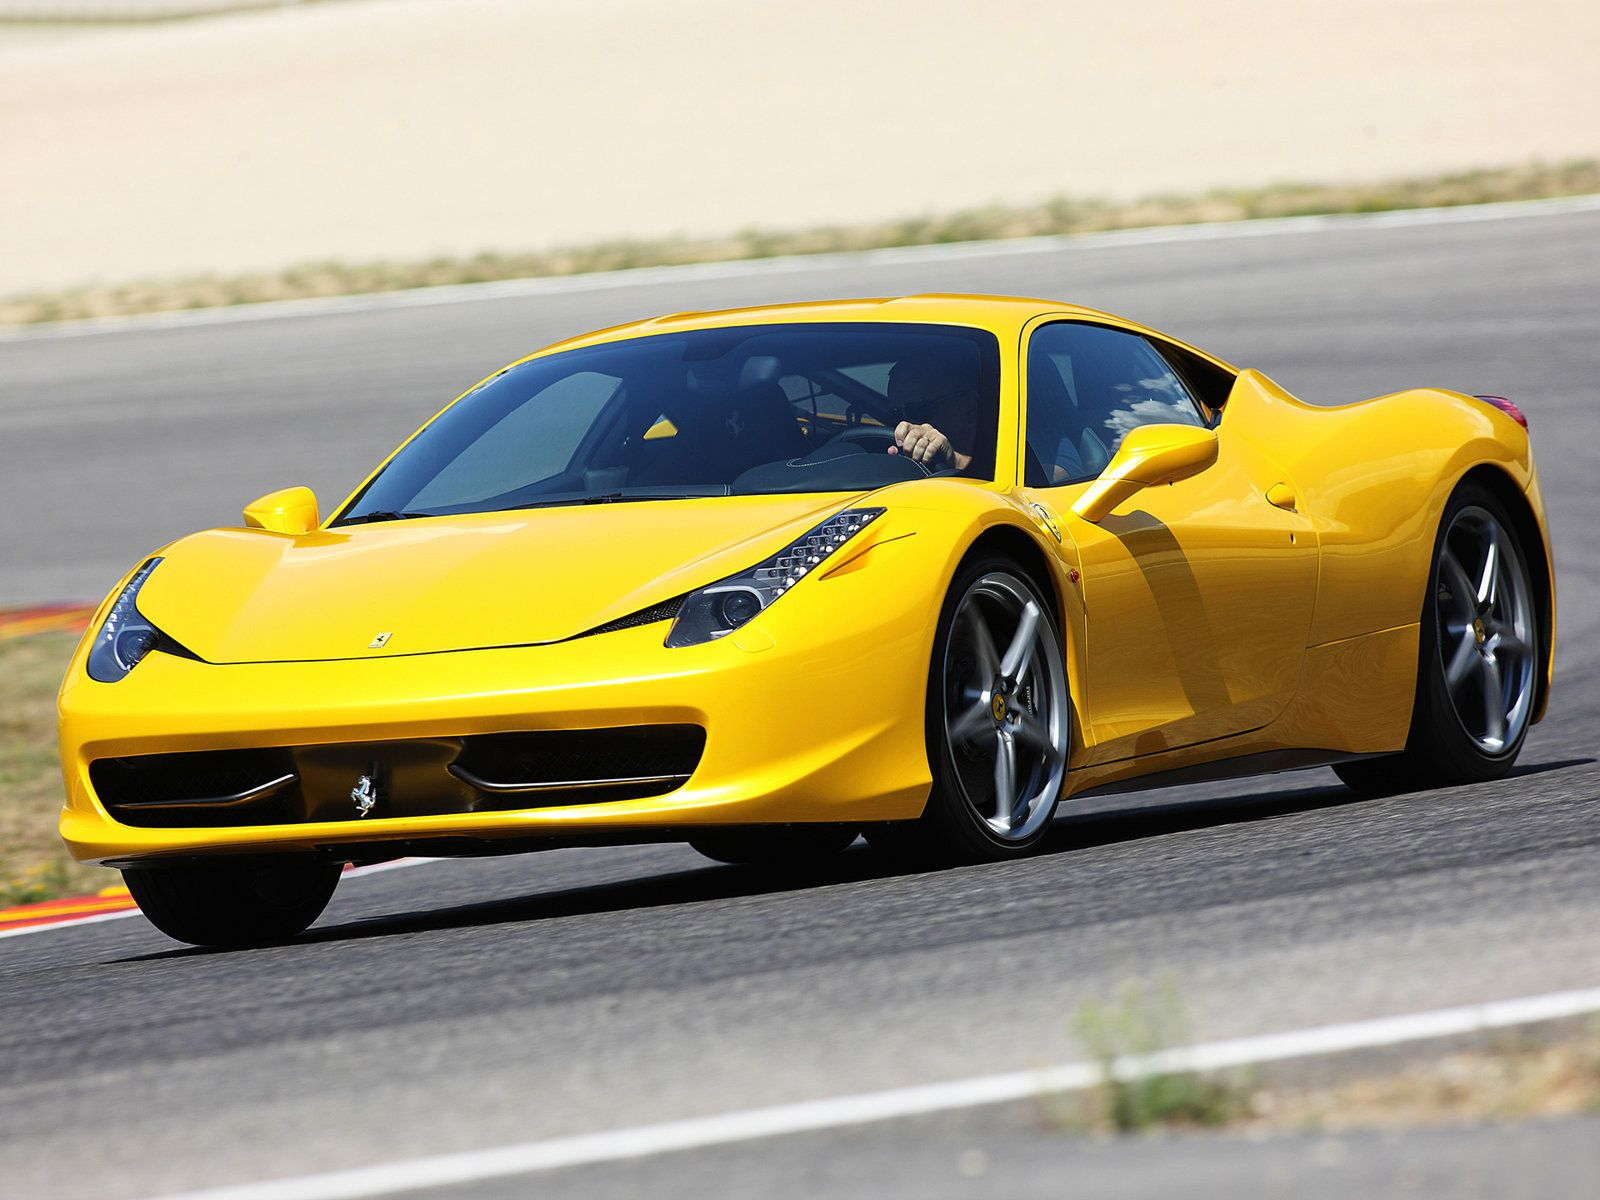 Yellow Car 458 Italia Ferrari 458 Italia Photo Car